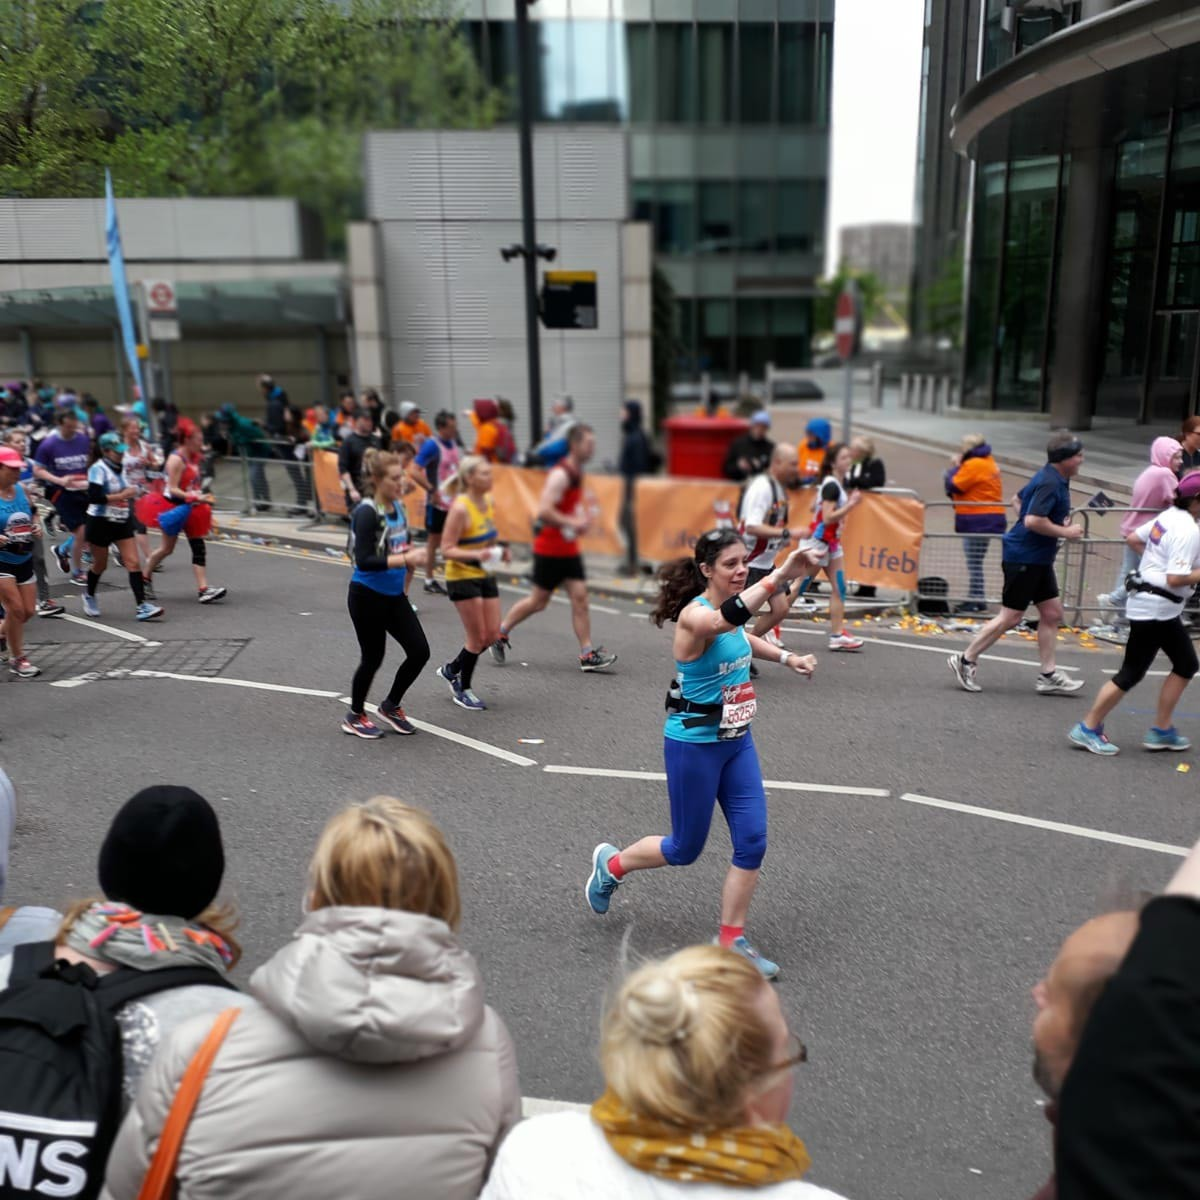 Katherine Selby running the London Marathon 2019